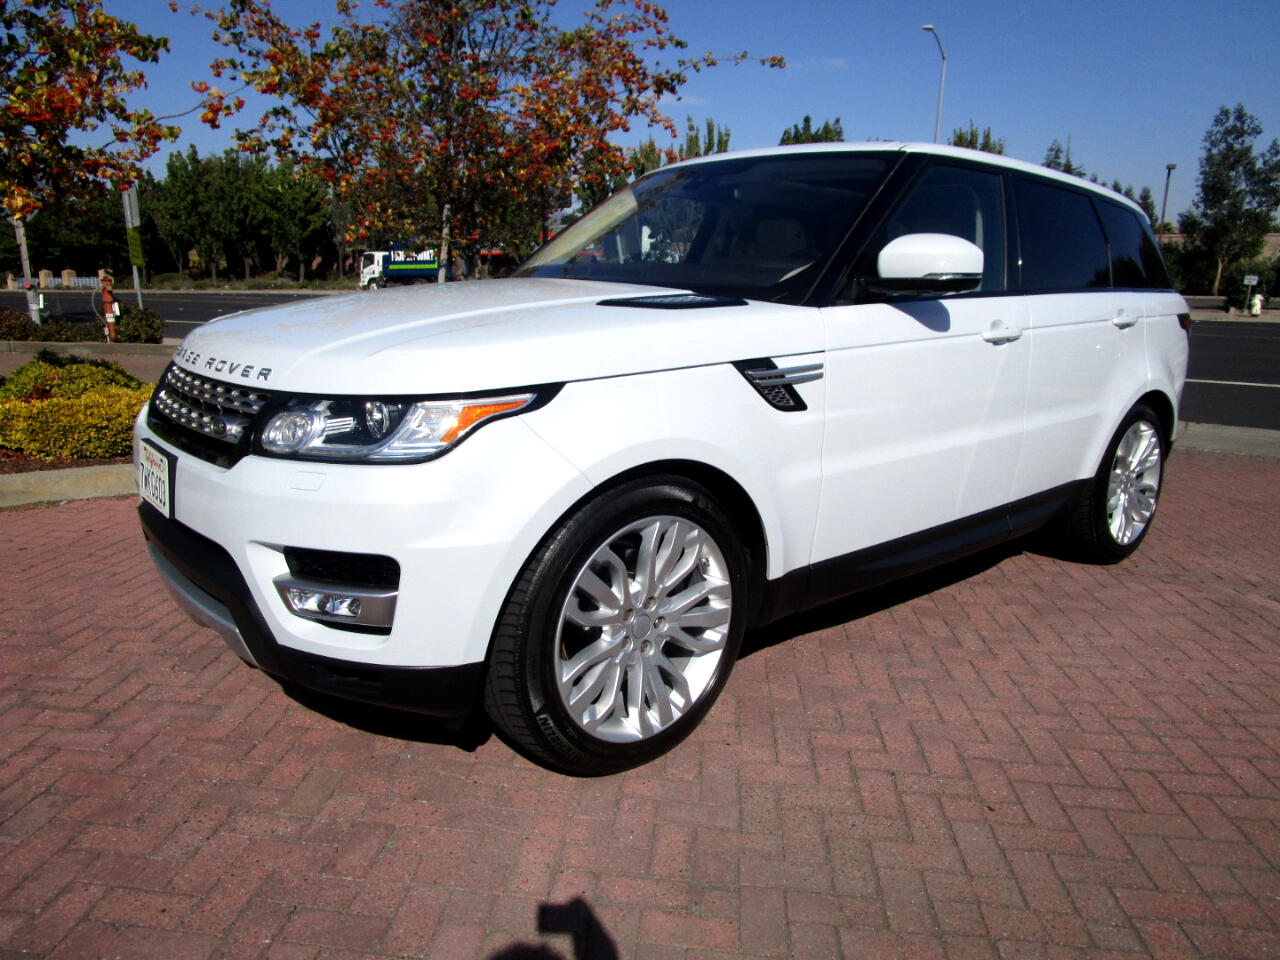 2016 Land Rover Range Rover Sport HSE**PWR 3RD ROW SEAT**HEAT/AC SEATS*REAR HEAT SEA